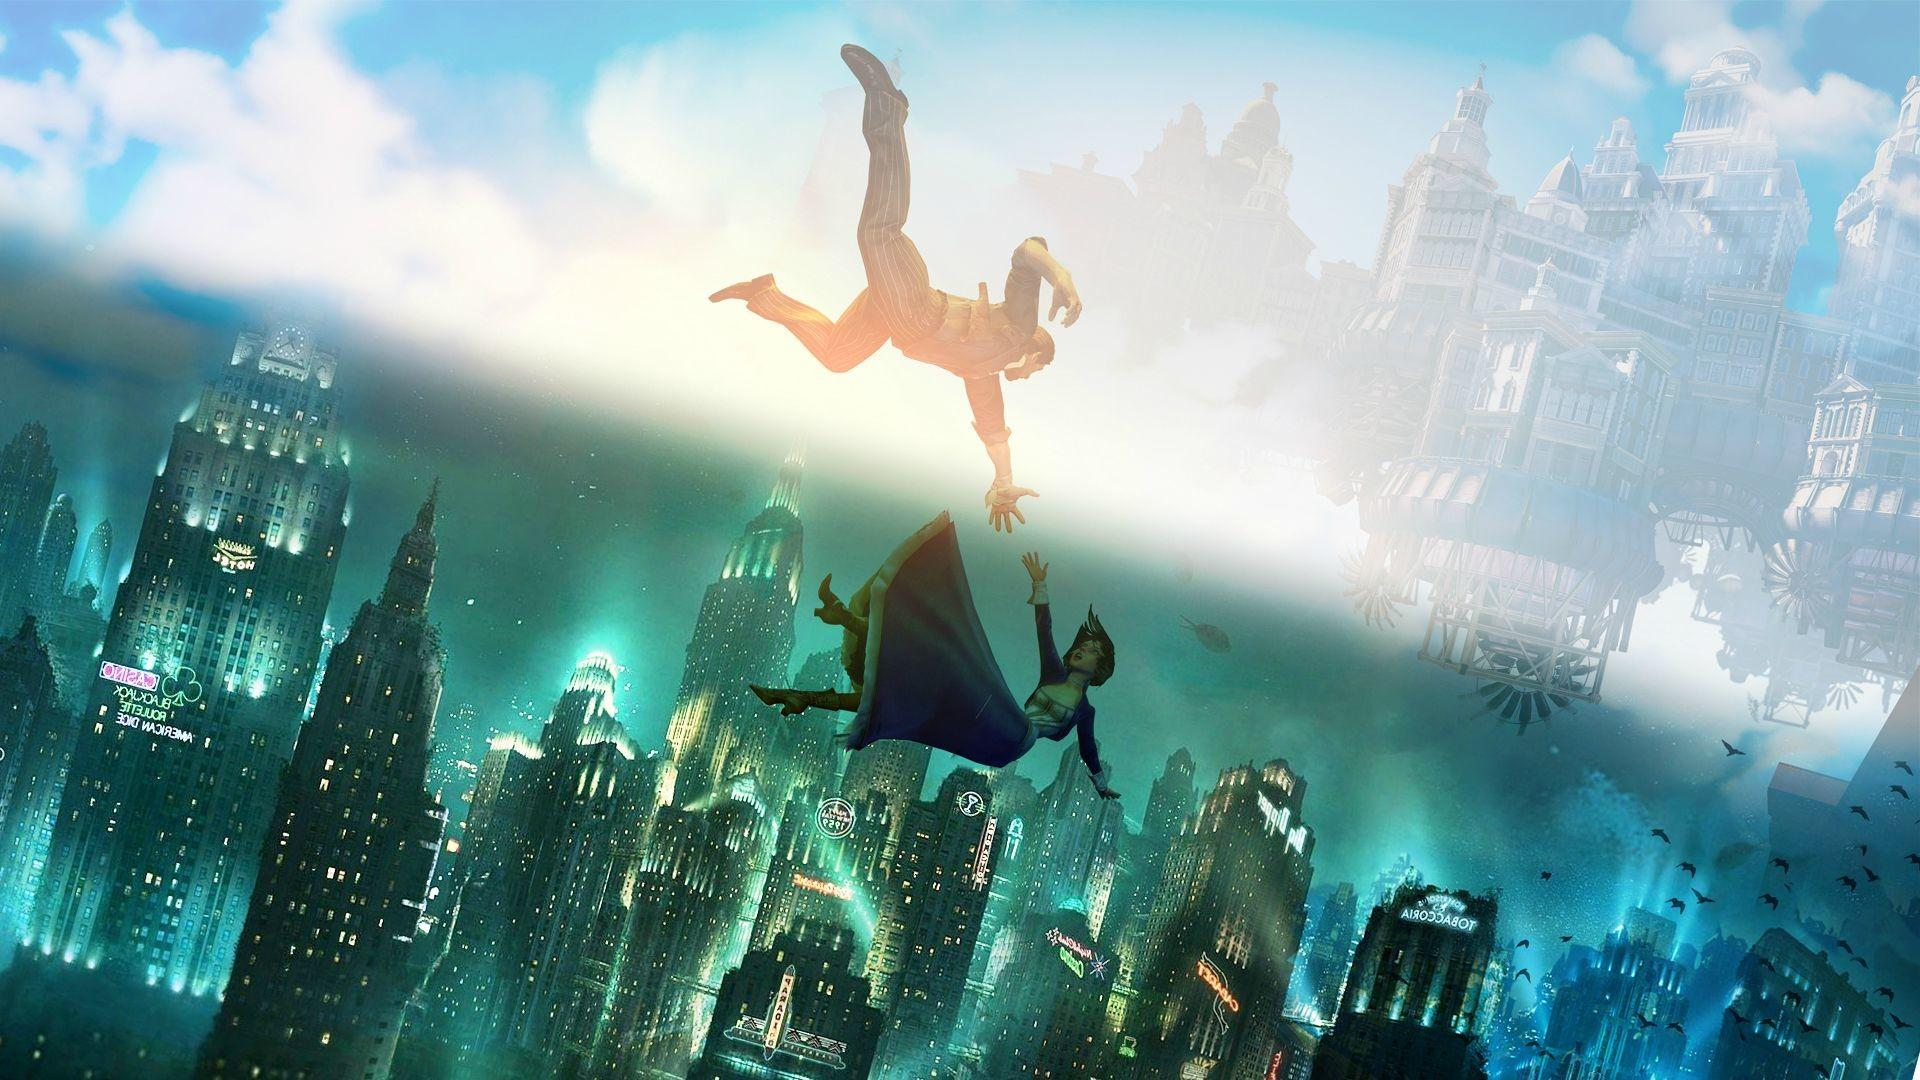 BioShock 4 will be next-gen, but will use Unreal Engine 4